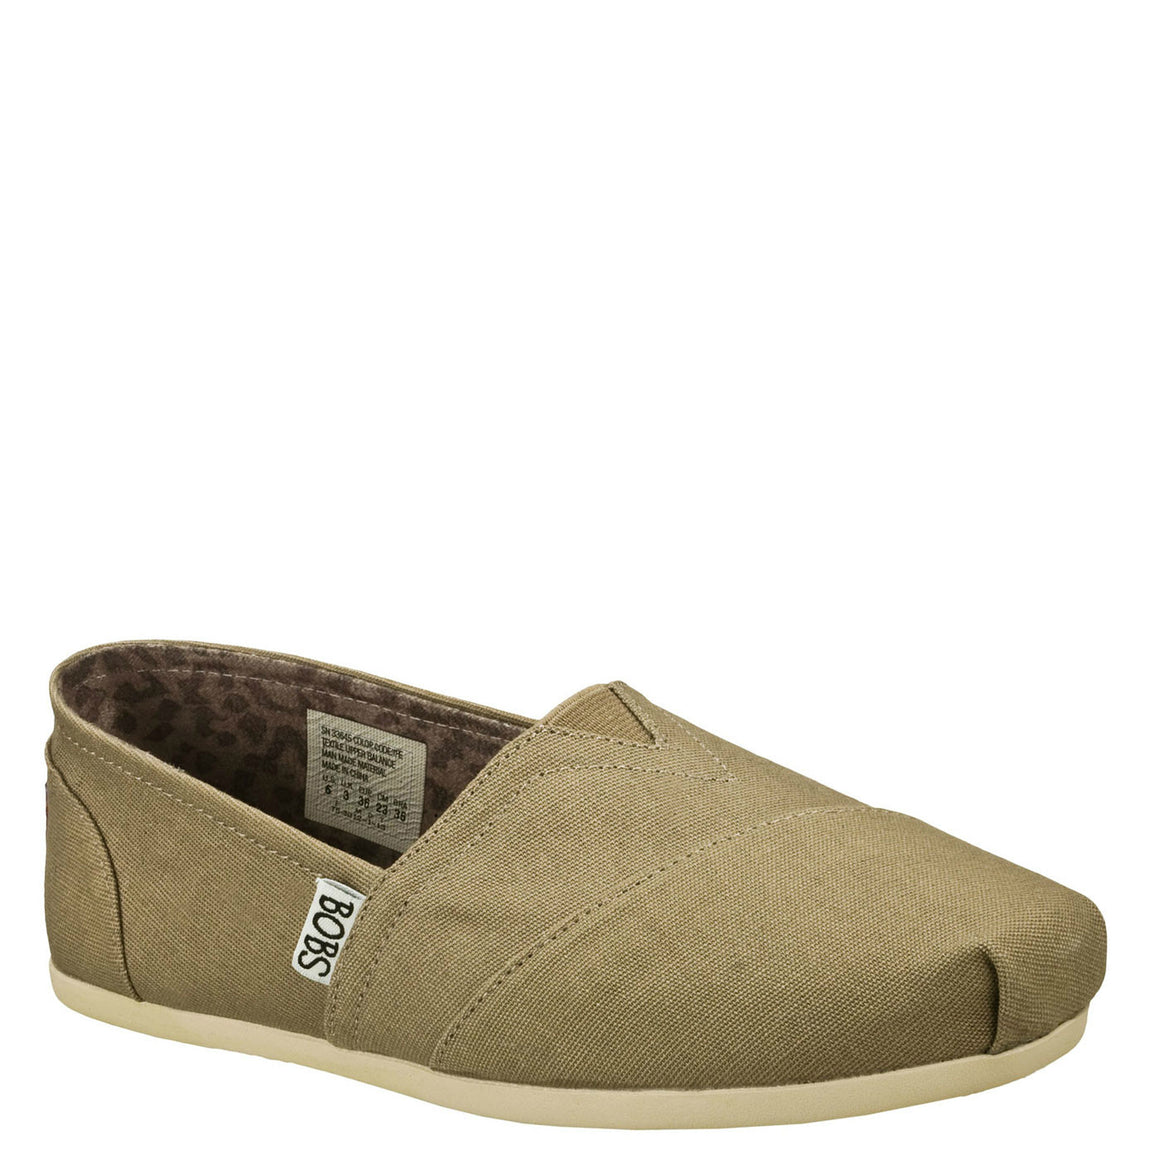 Skechers Women's Bobs Plush Peace & Love - Taupe 33645 TPE